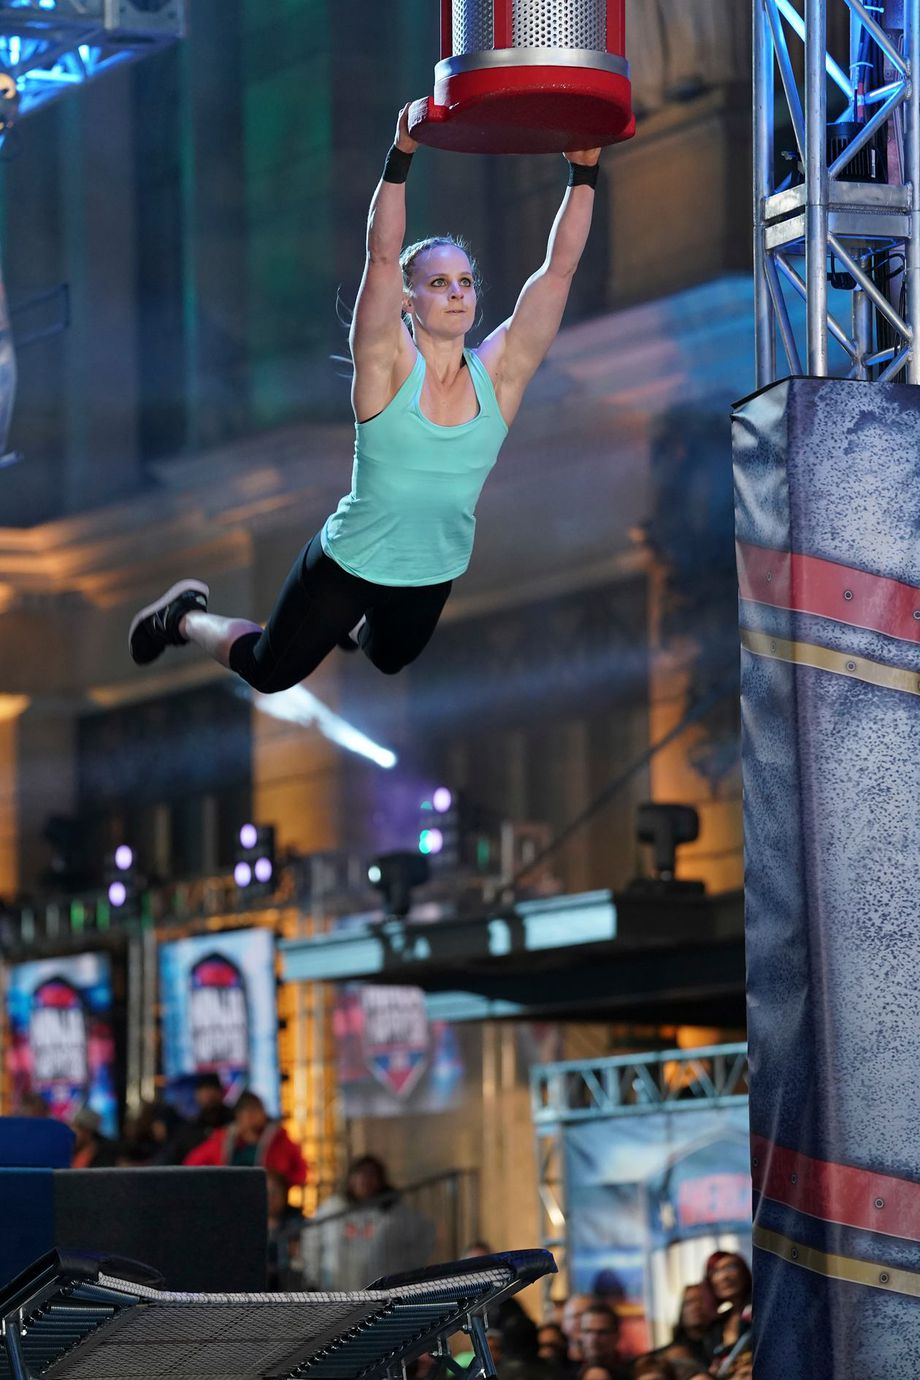 Anna Shumaker competing on season 10 of American Ninja Warrior